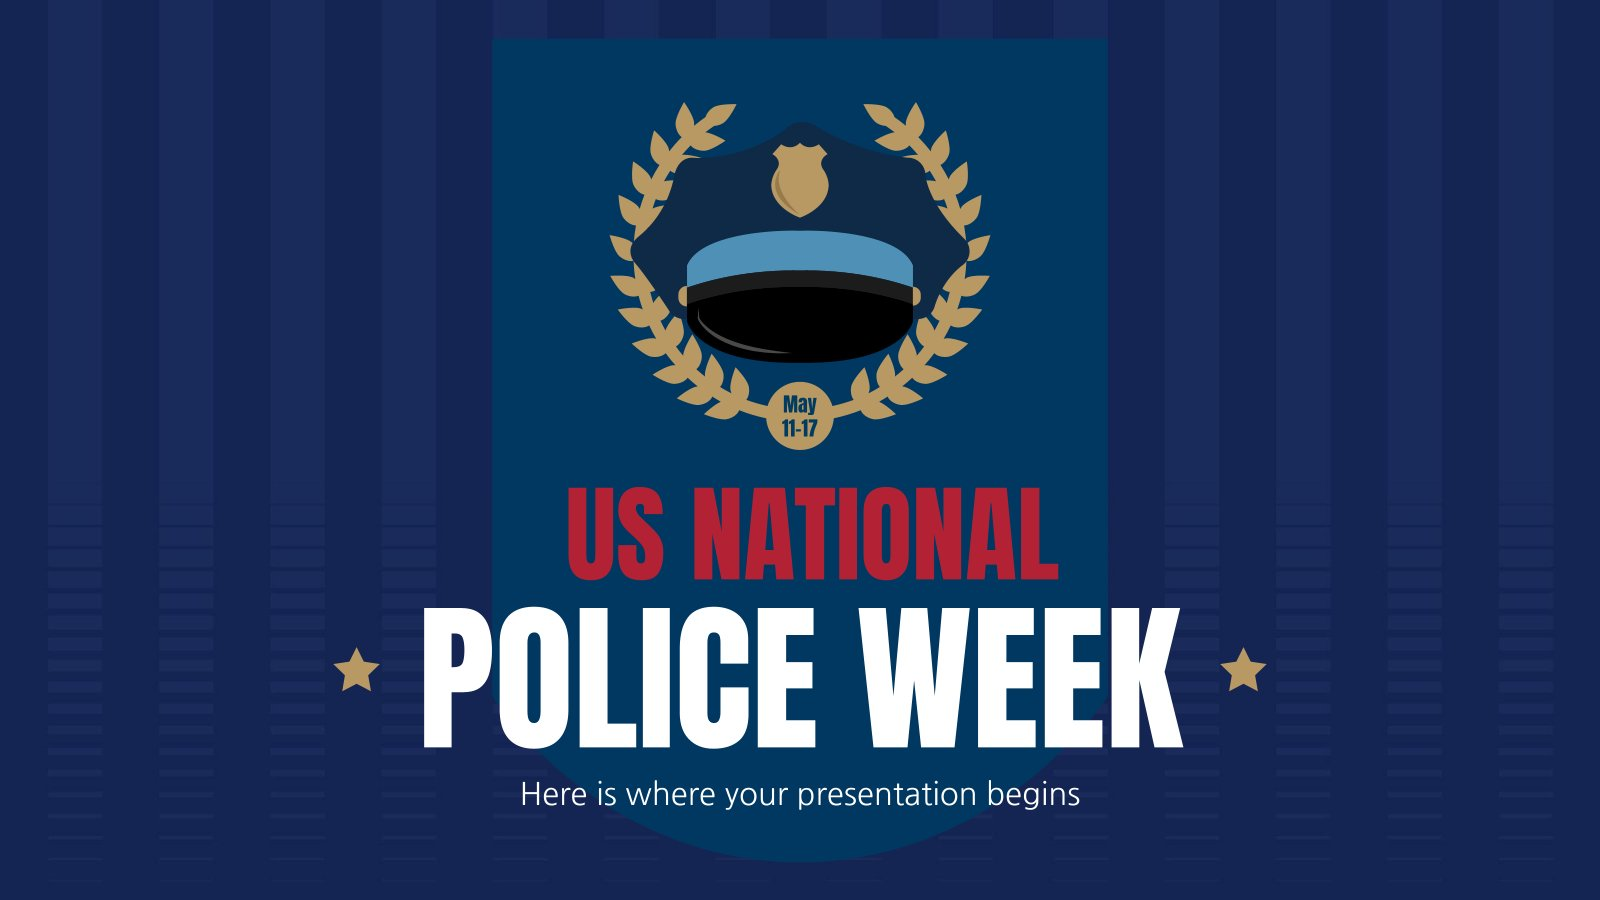 US National Police Week presentation template